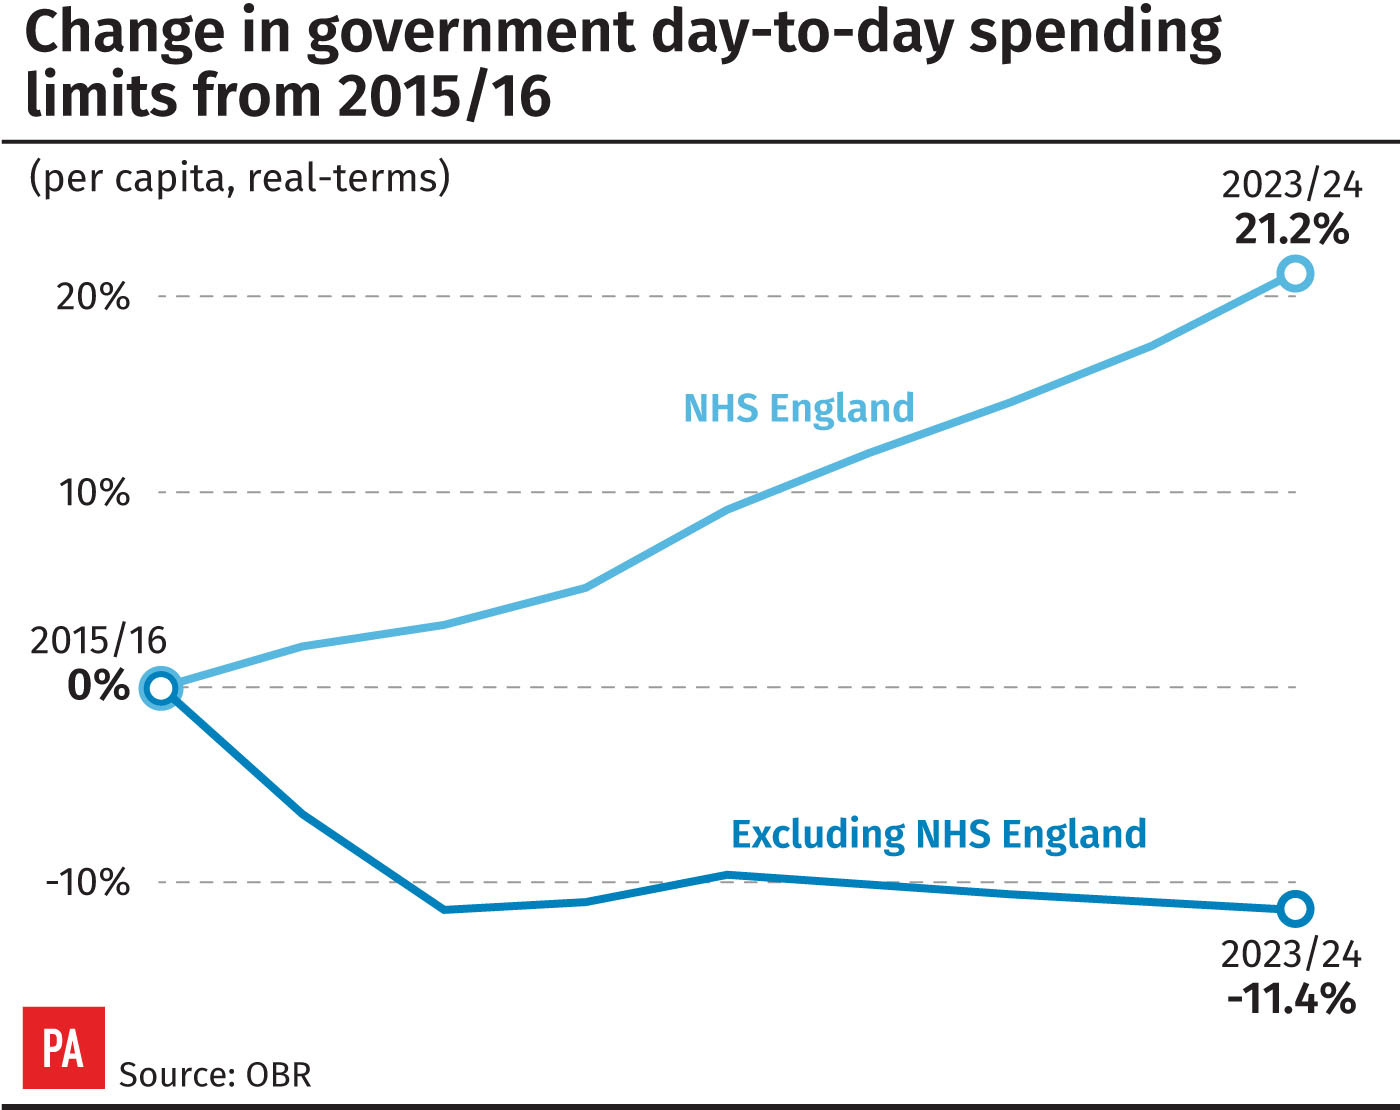 Change in government day-to-day spending limits from 2015/16